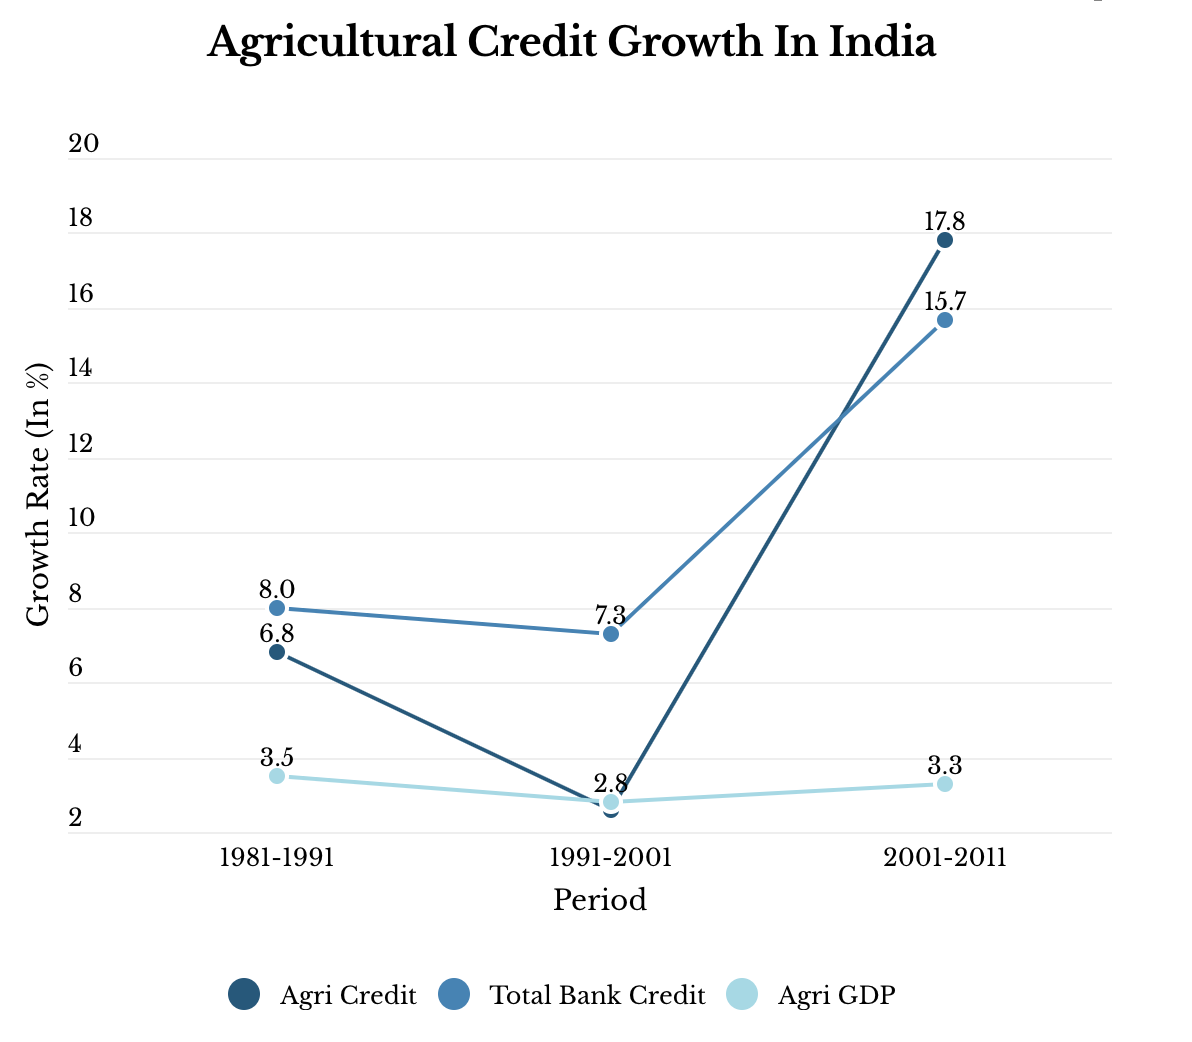 Source: Ministry of Finance, Economic Survey, 2014-15